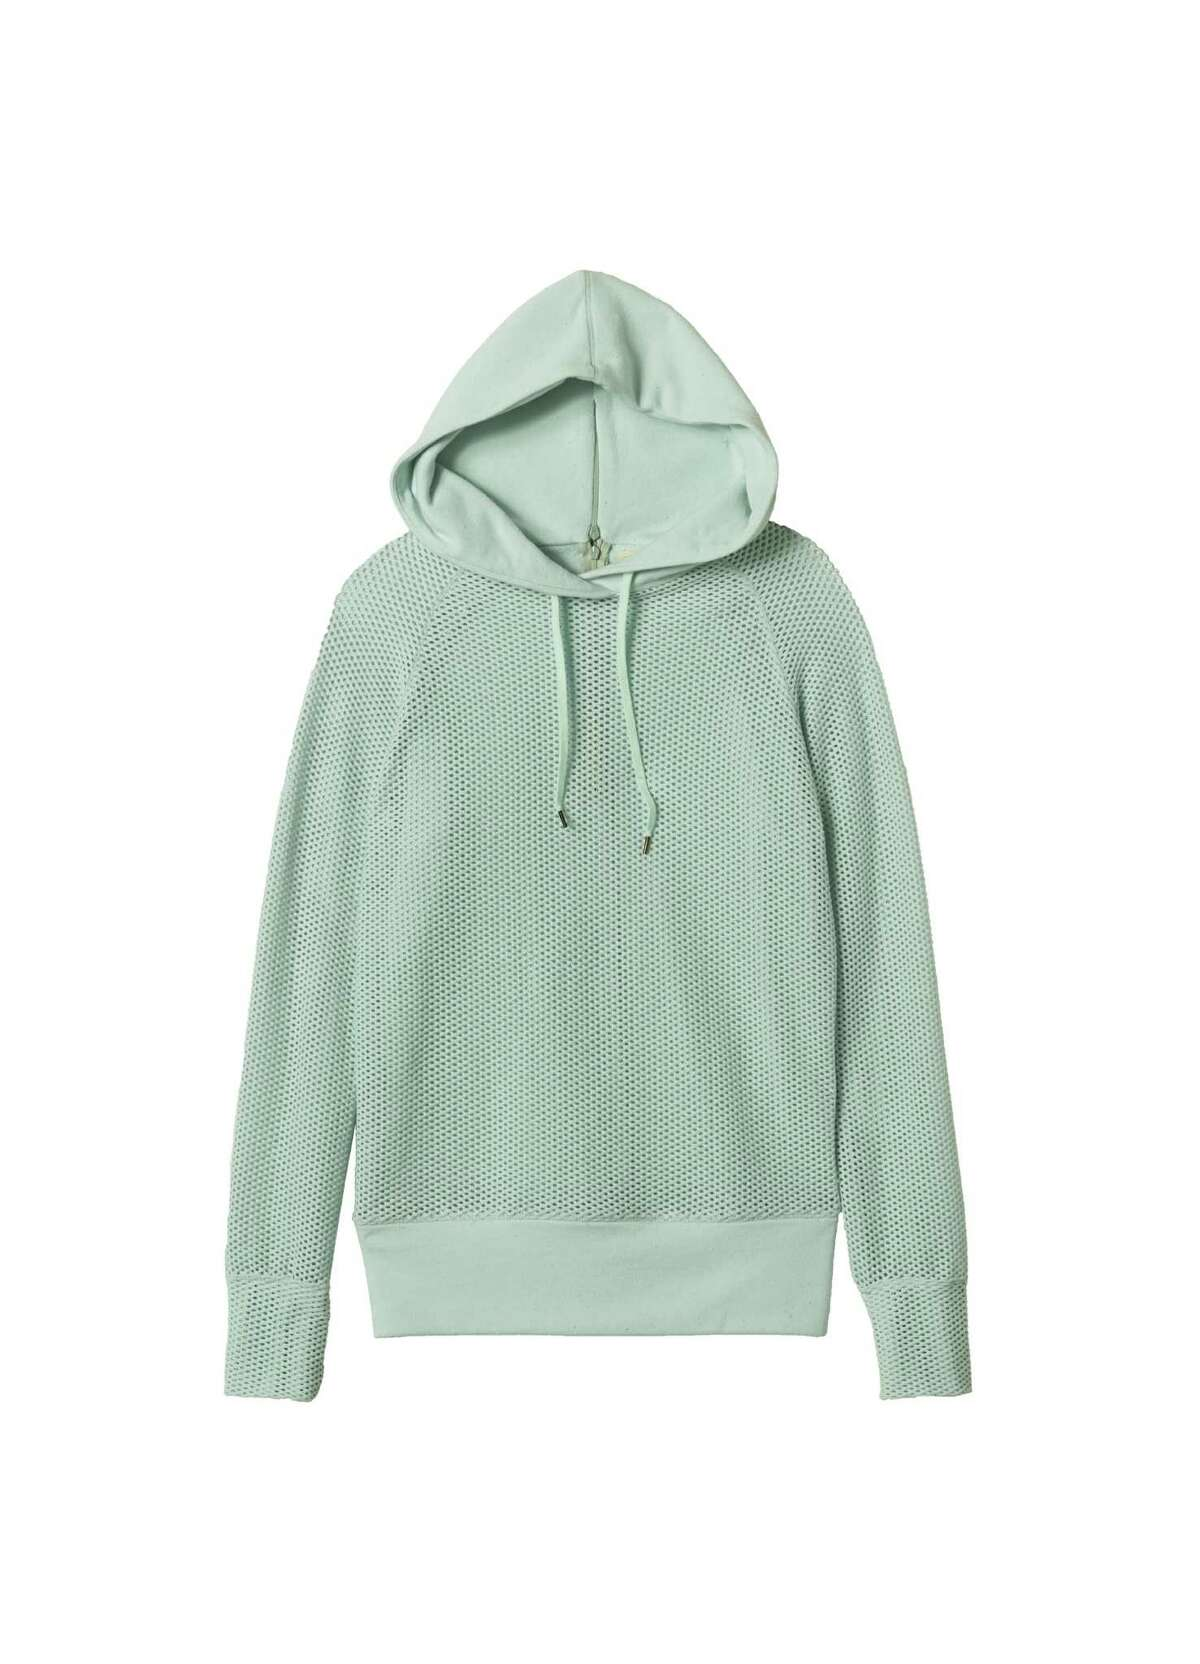 HOODED: Pair Rebecca Taylor's hooded mesh pullover in Robin's egg, $250 at Saks Fifth Avenue, with almost any bright color for spring.